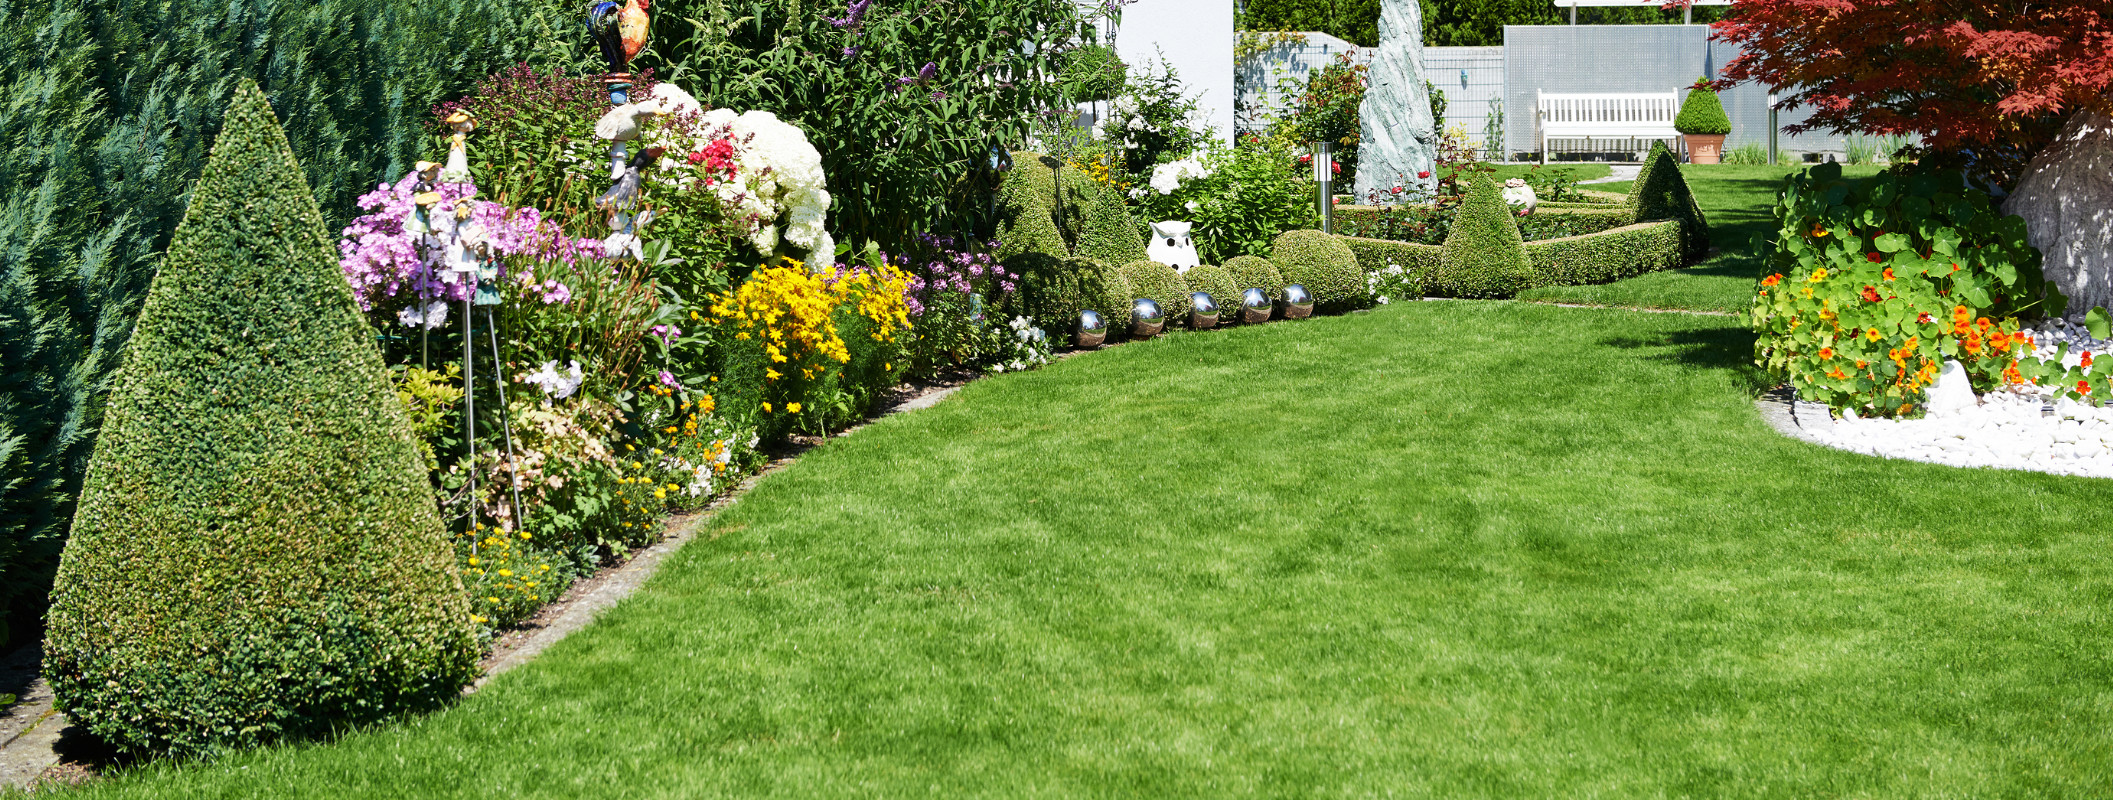 Well maintained garden with pruned bushes and cut grass